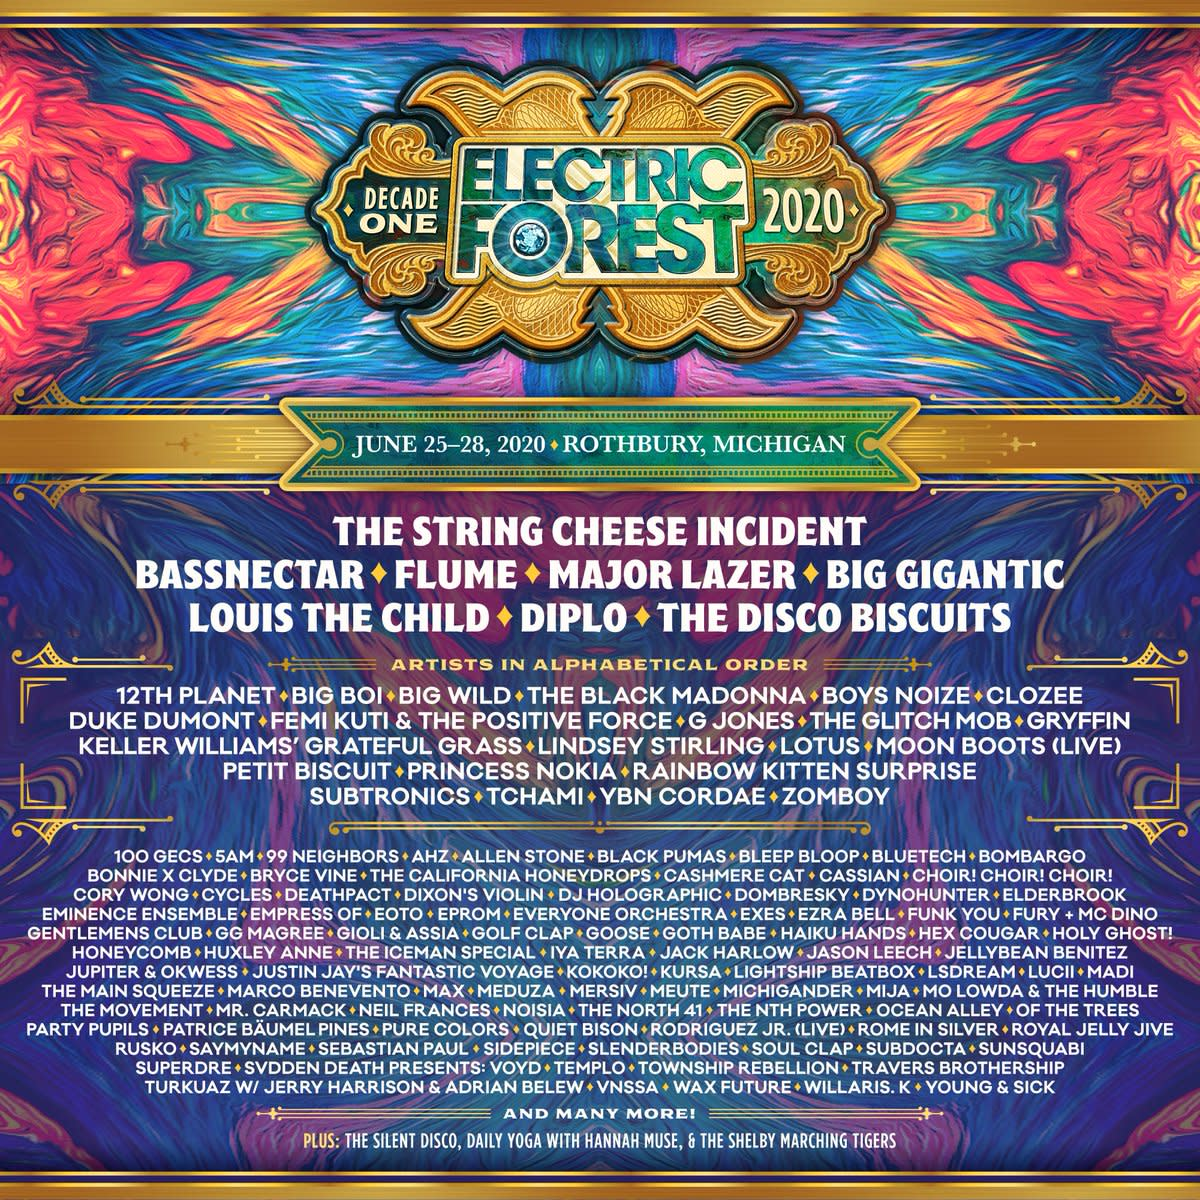 Electric Forest 2020 lineup.